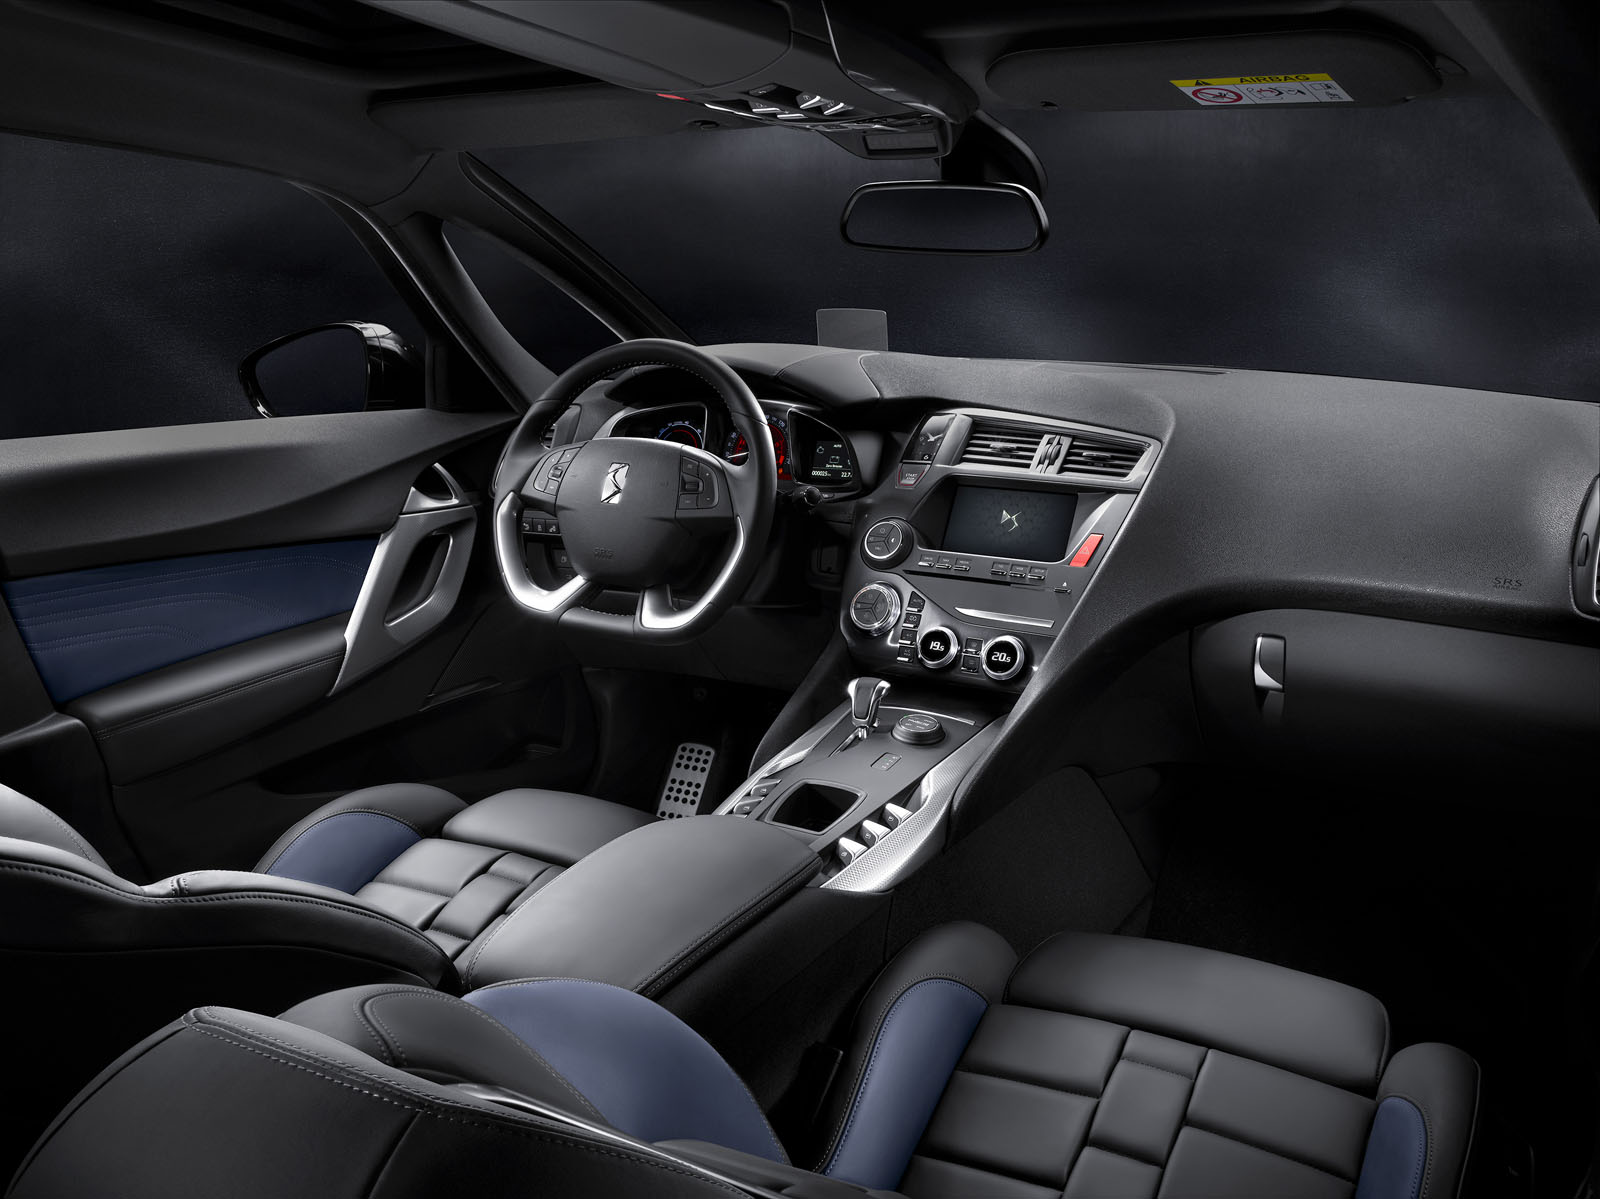 Essai de la nouvelle ds 5 restyl e raffinement la for Interieur french